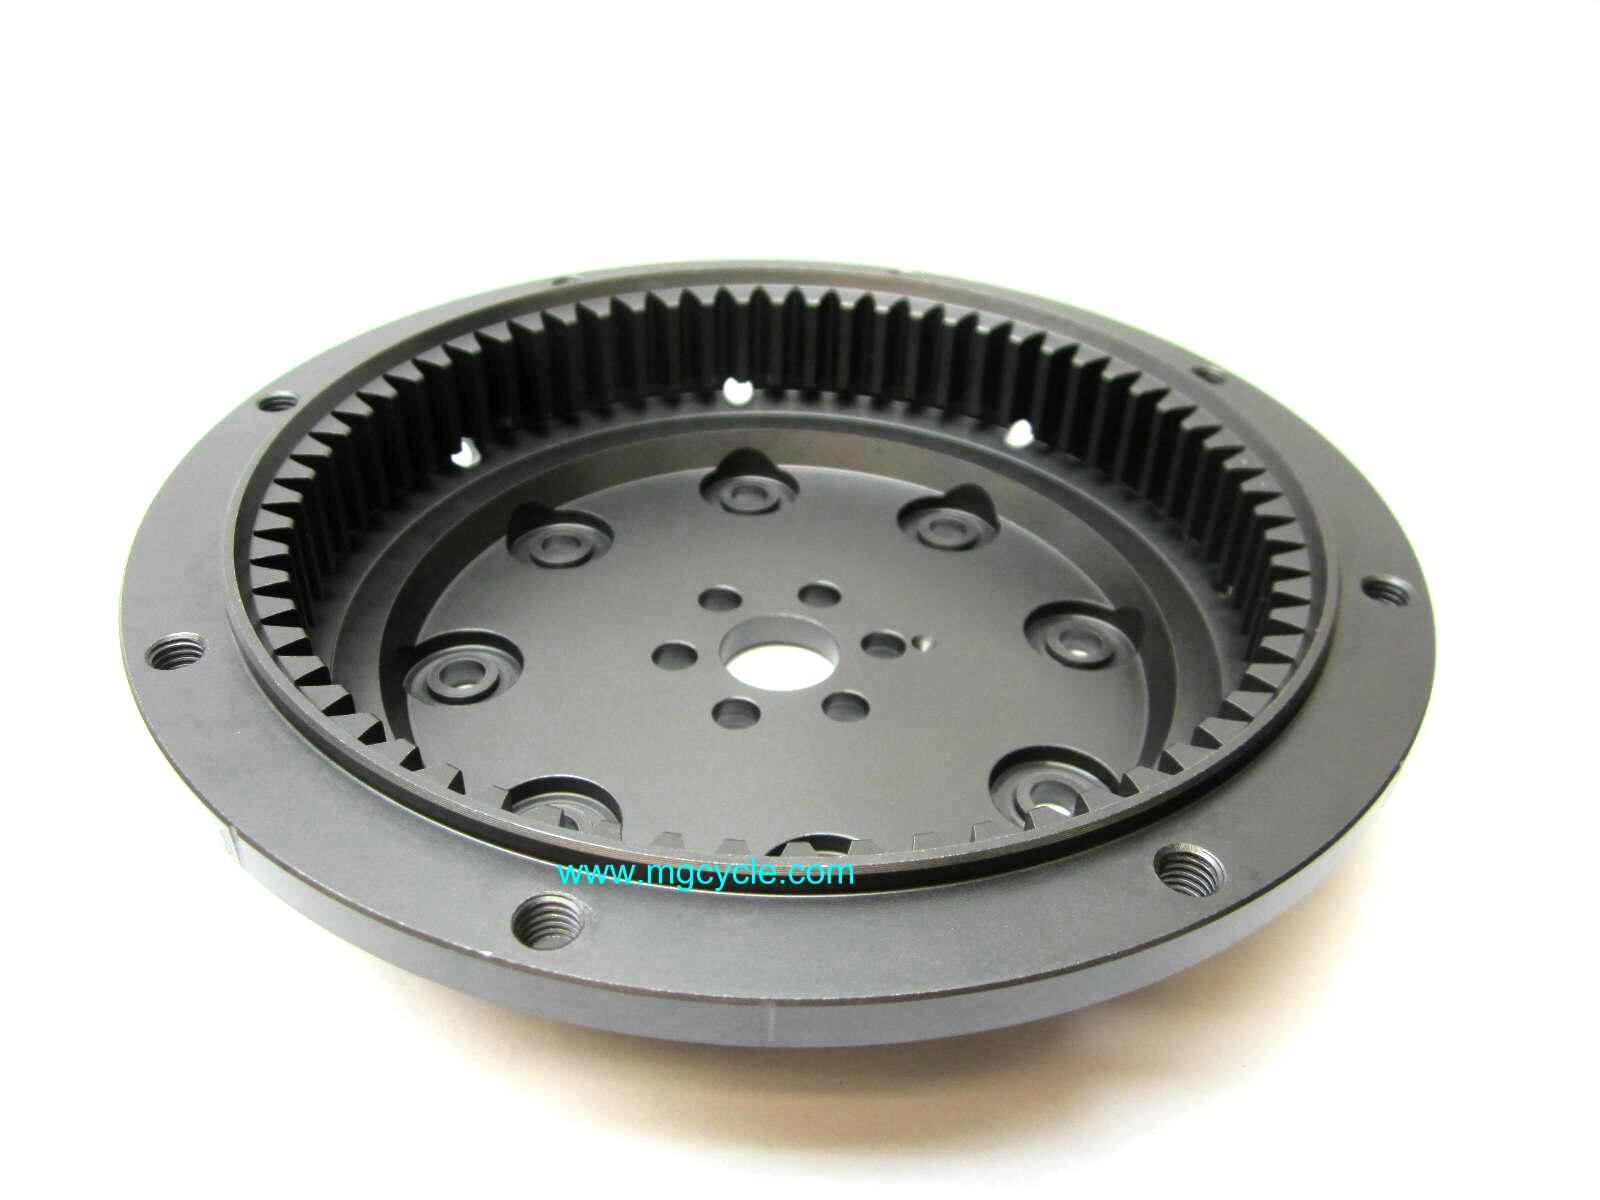 Flywheel 850 LeMans, LM2 LM3 LM4 LM5, 1000S 3.3kg, 7.8 pounds